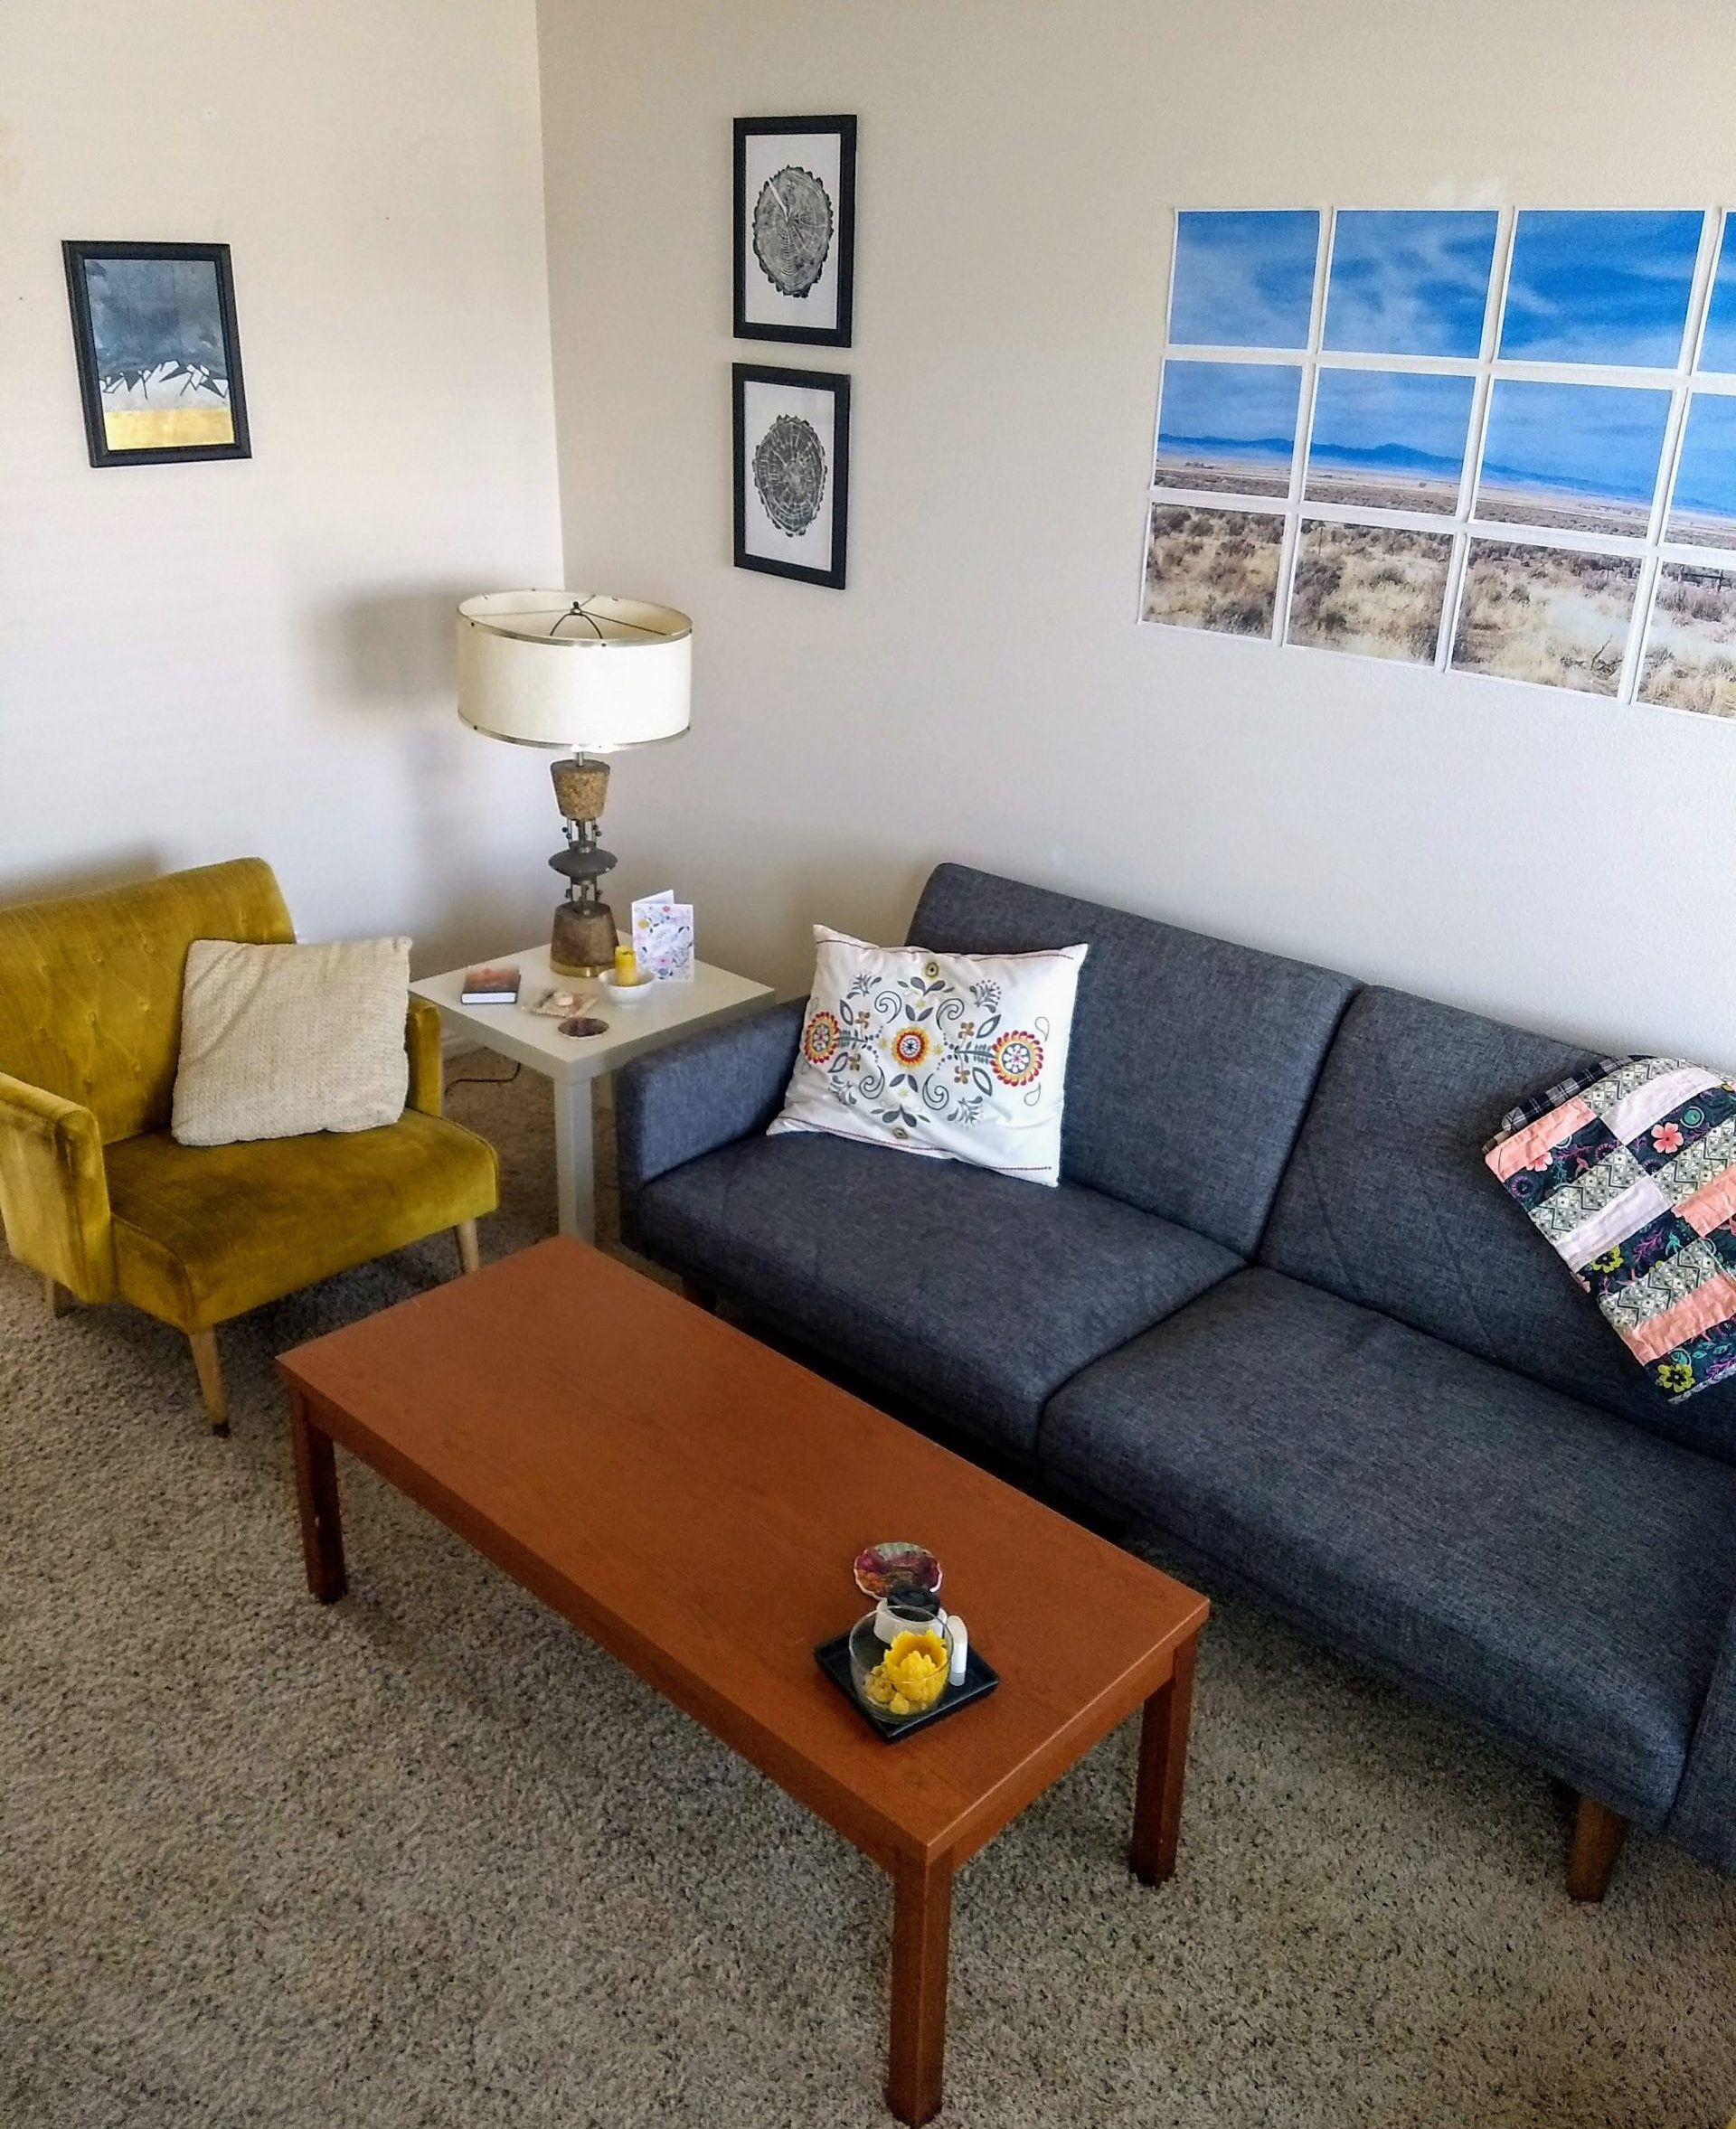 Home Tour: Living Room, Part 2!